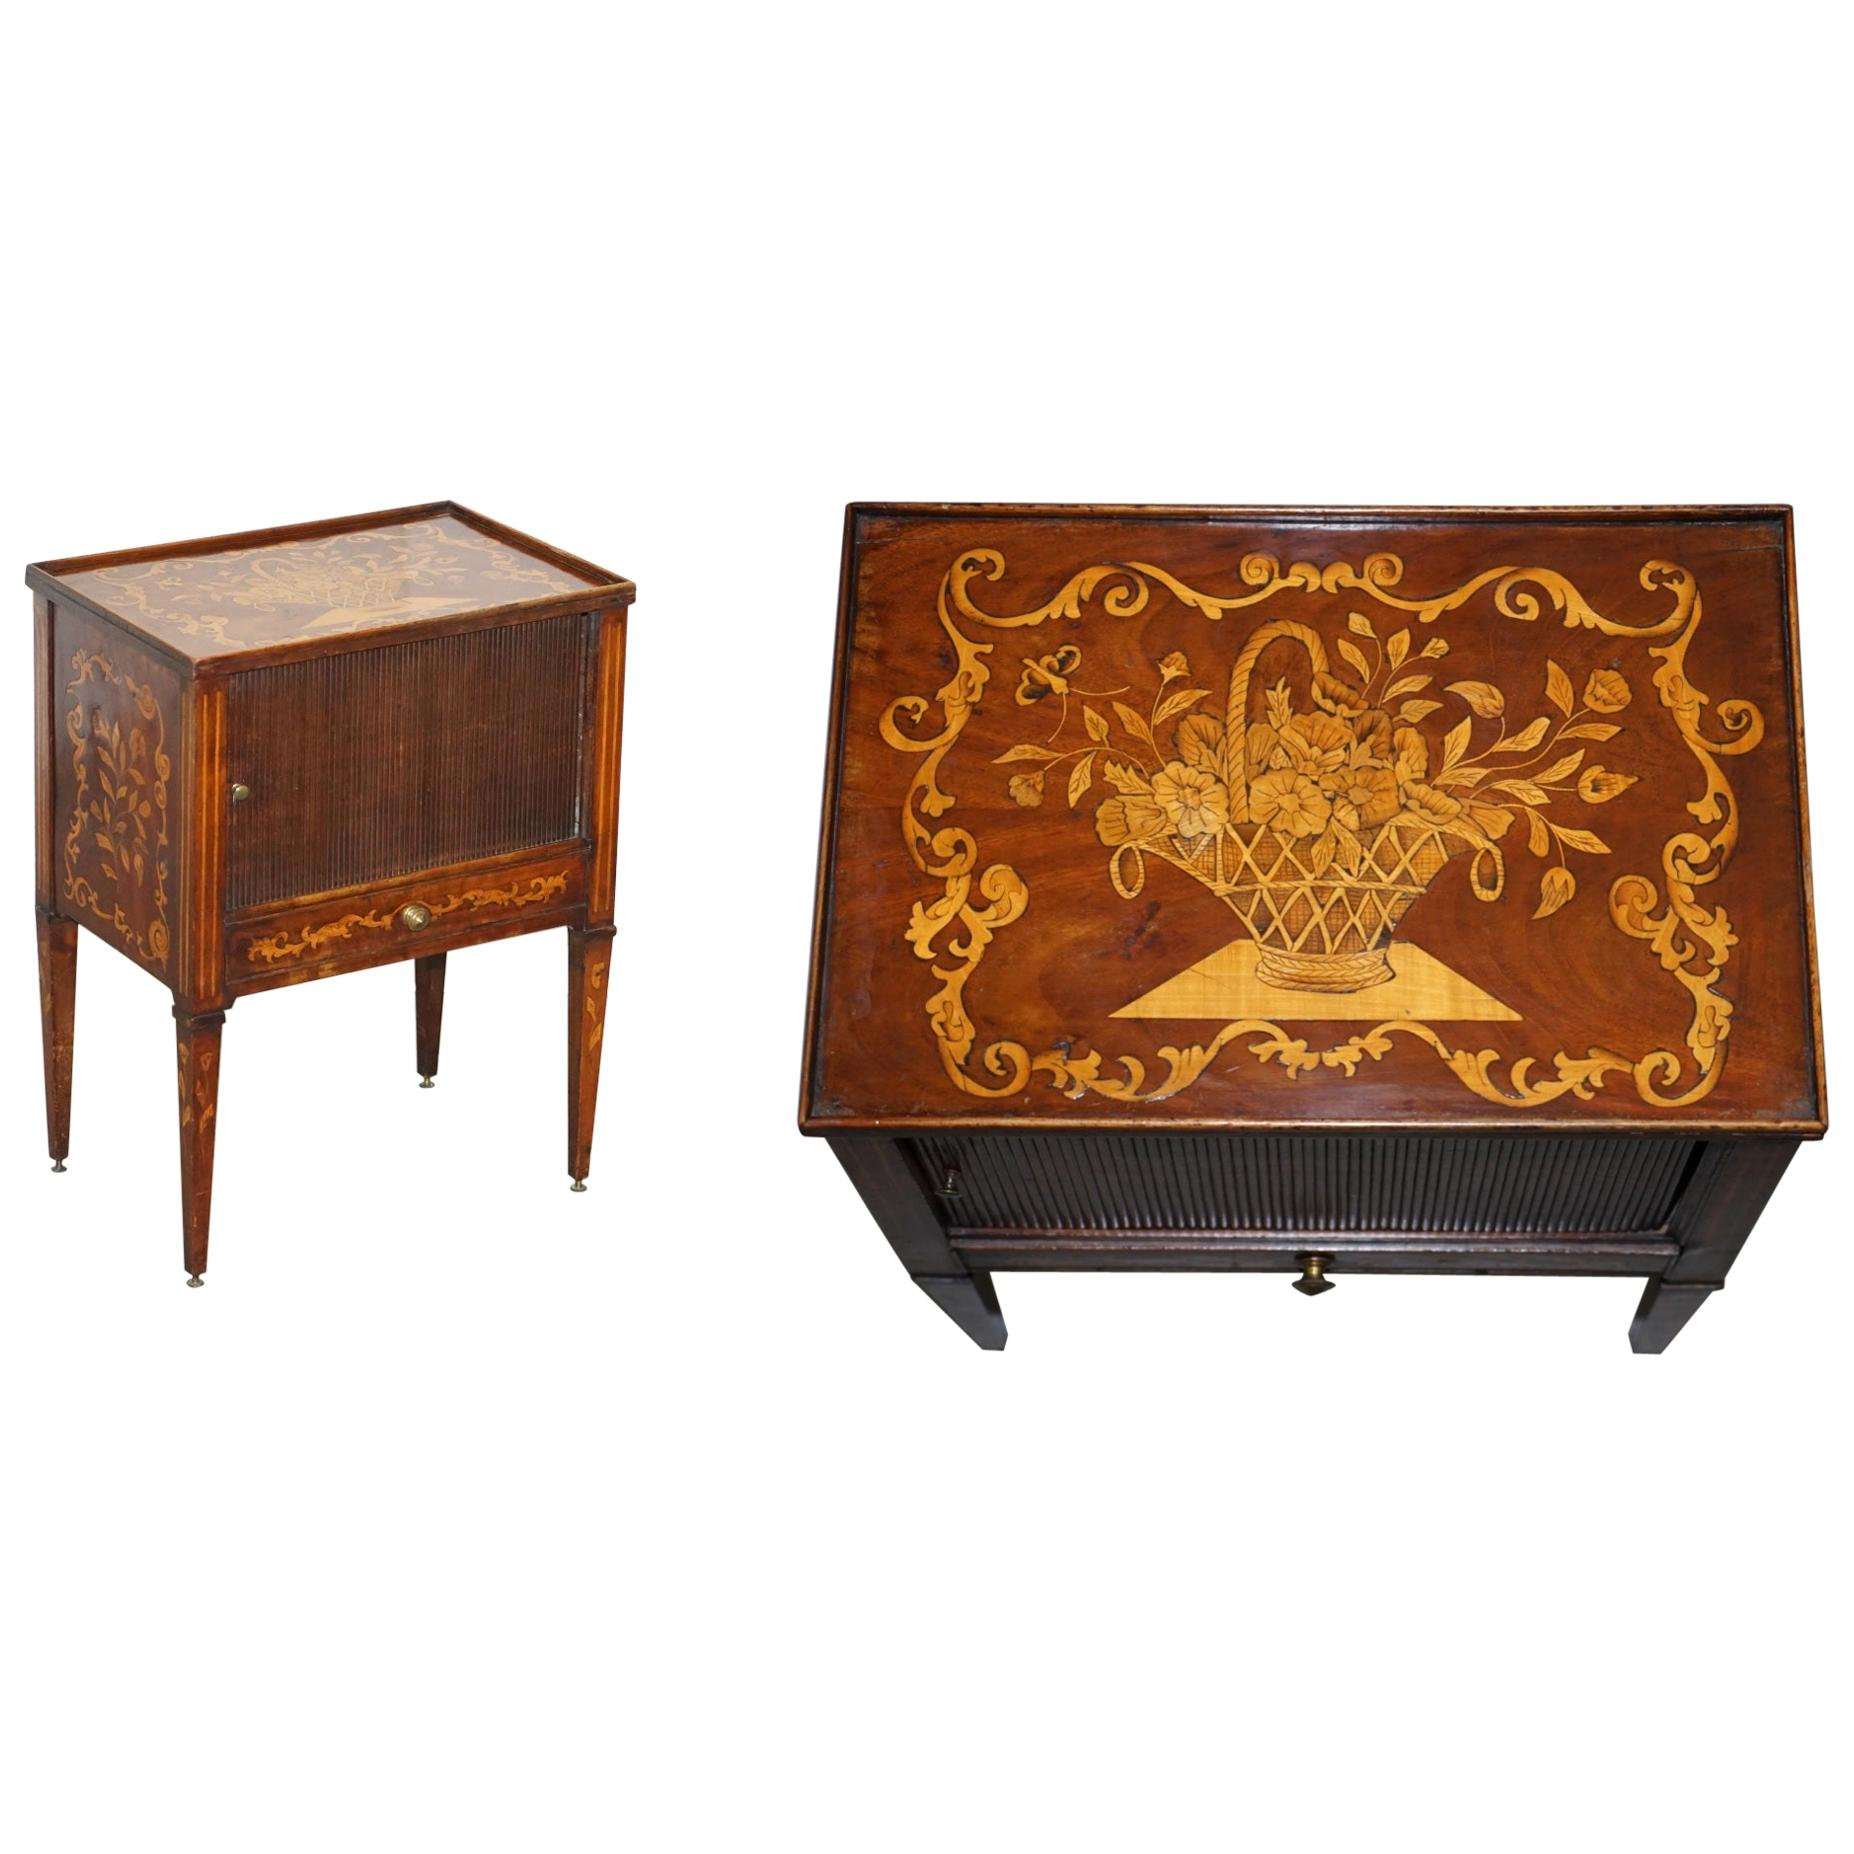 Lovely 19th Century Dutch Marquetry Inlaid Side Table with Tambour Fronted Door